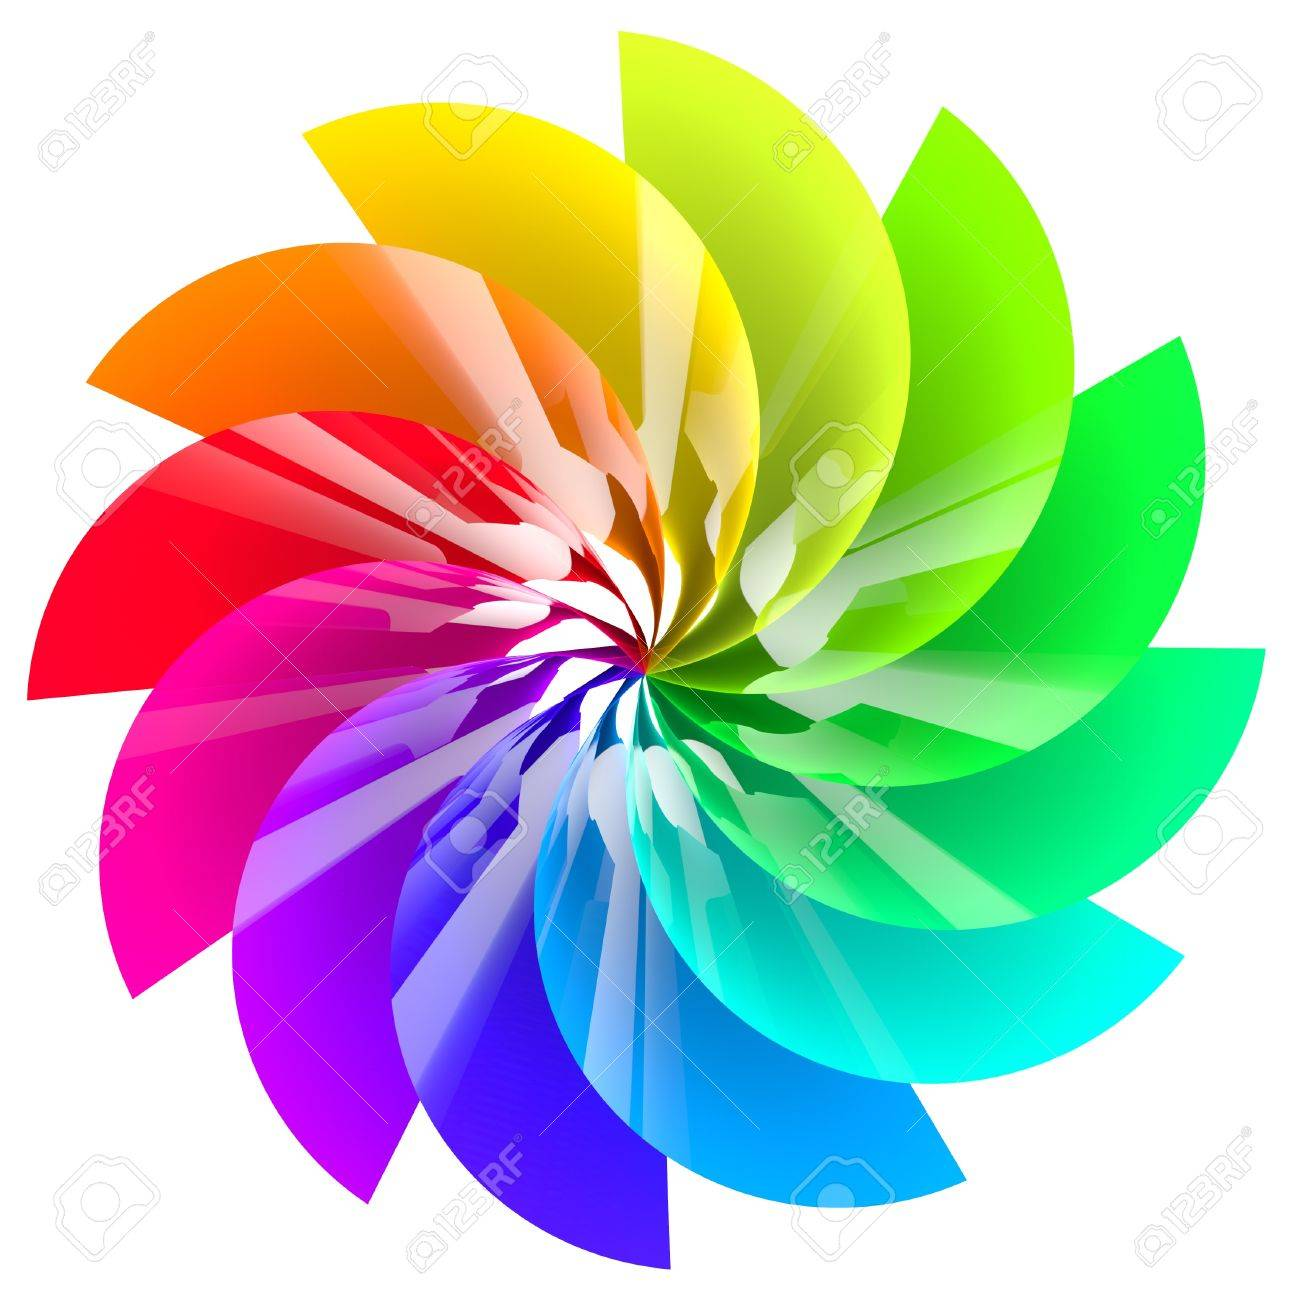 Colorful abstract flower isolated on white background Stock Photo - 16184235